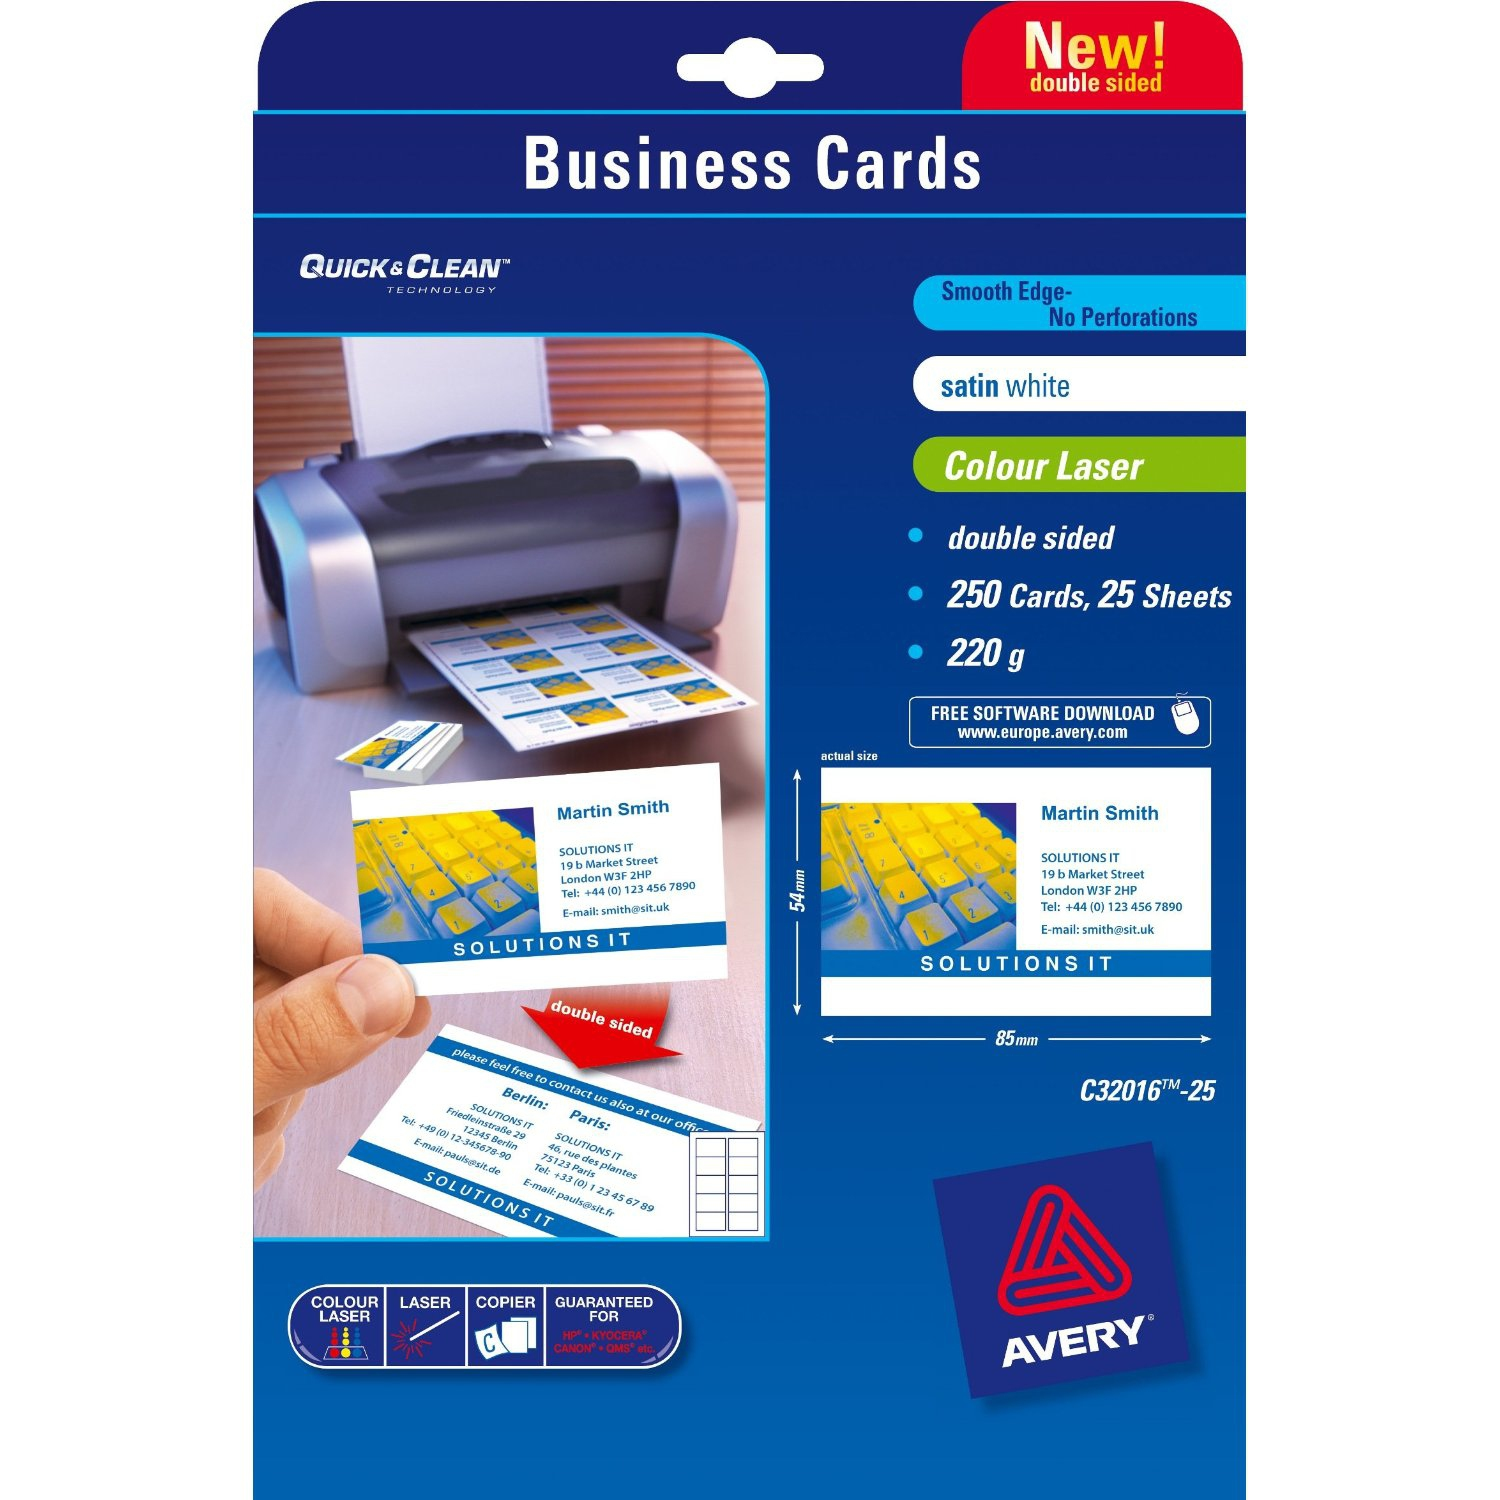 C32016-25 avery Avery Business Cards Double Sided Satin C32016-25 (250cards) - AD01